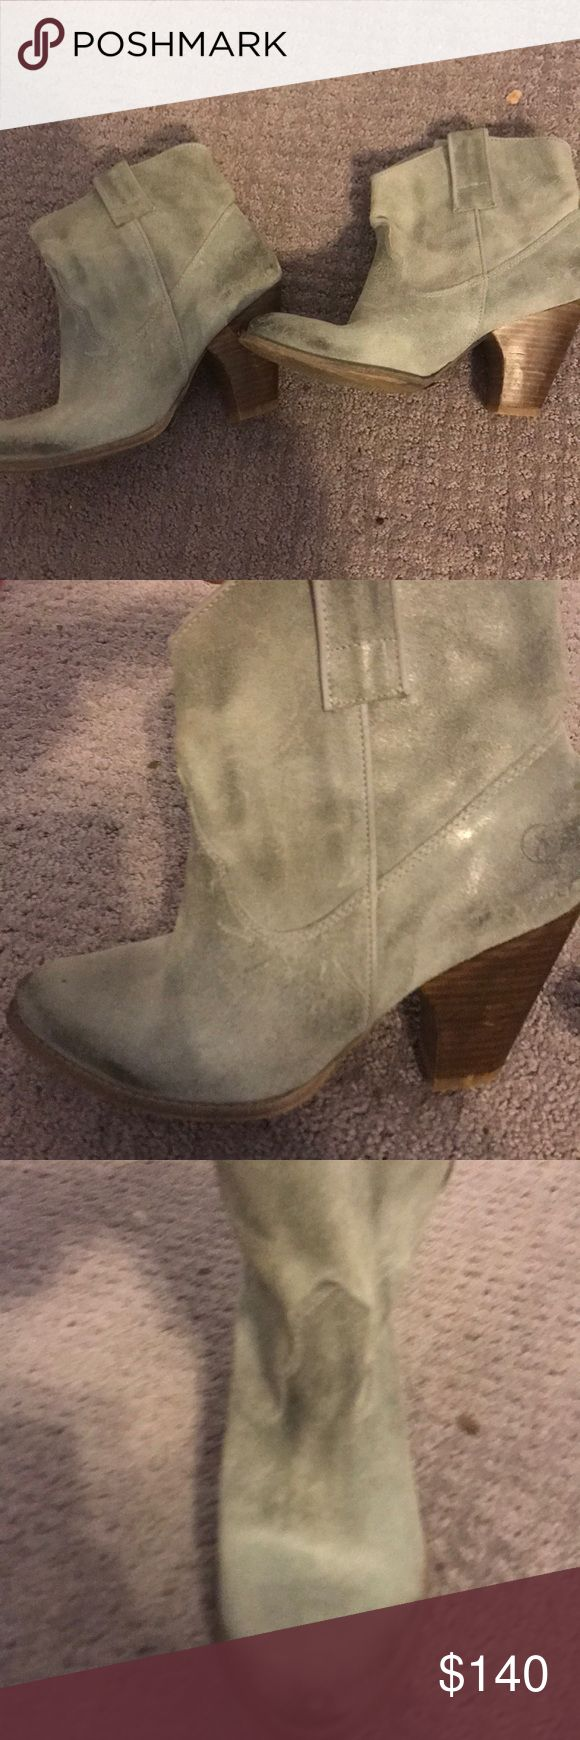 !!LIKE NEW!! Bronx Gray Booties Worn once.  Distressed gray with chunky heel.  Perfect for winter nights out!!  Make me an offer :) Shoes Ankle Boots & Booties